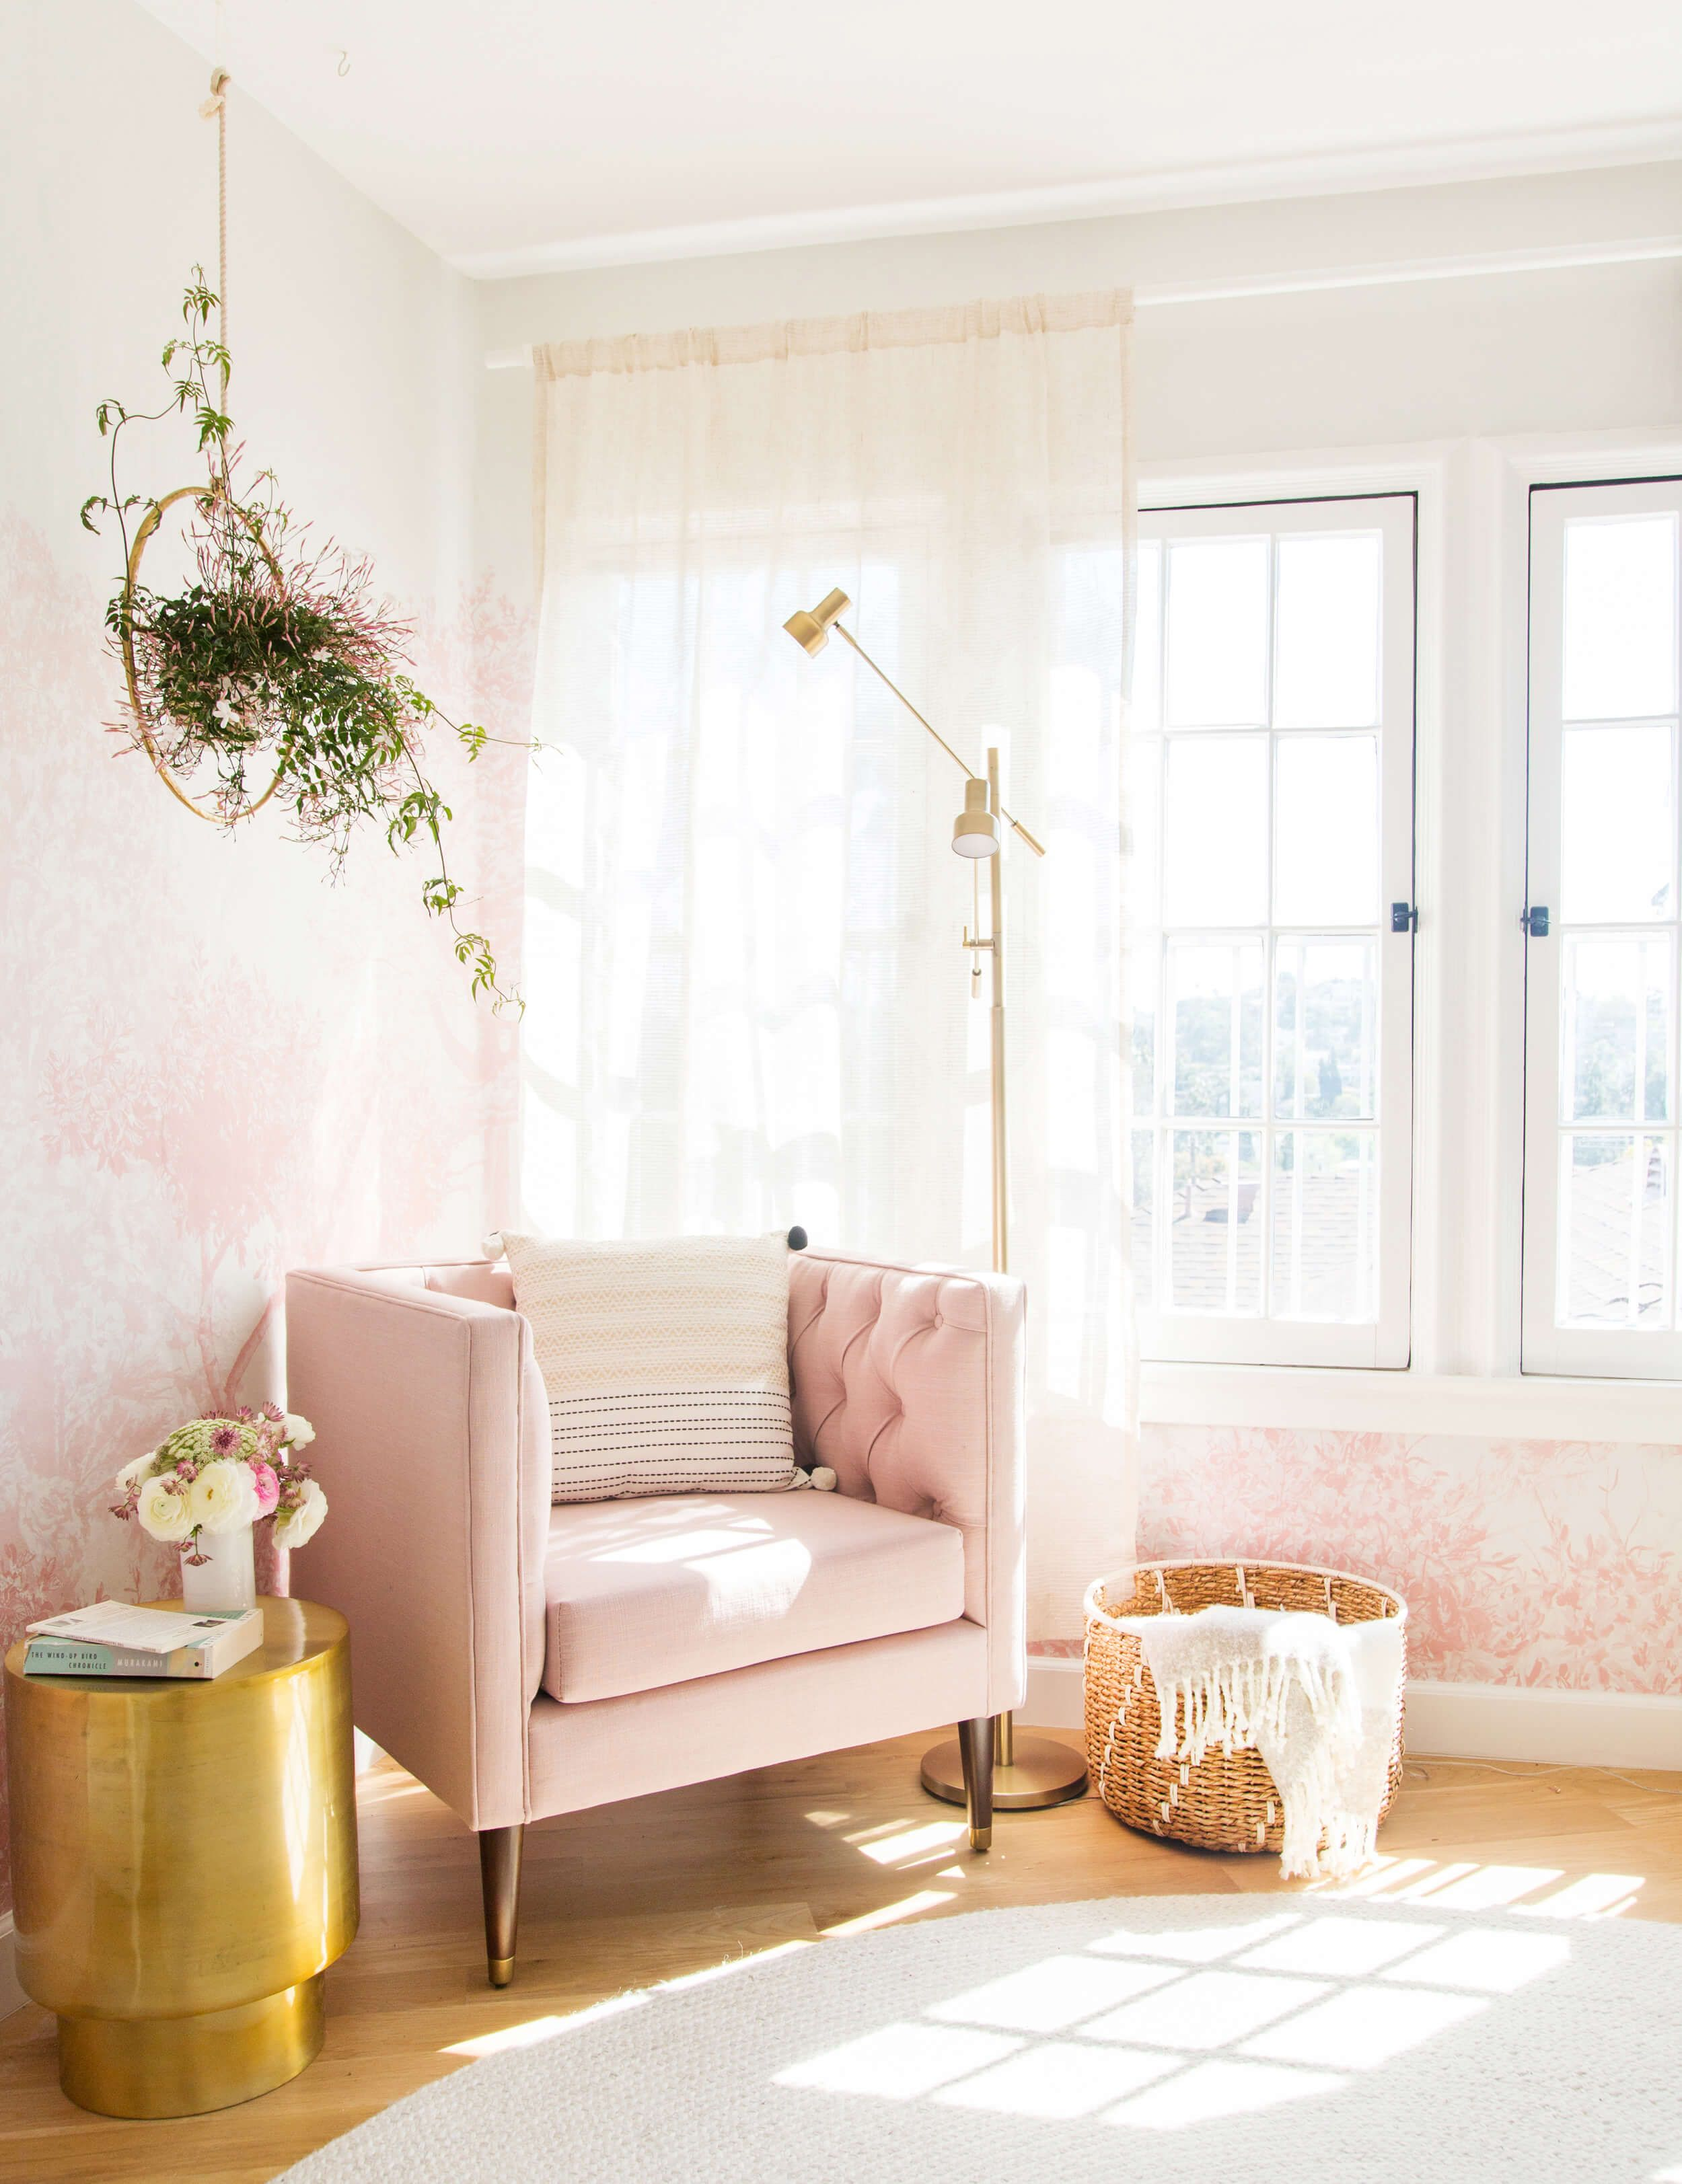 New Spring Target Collection | Pinterest | Target, Spring and Collection